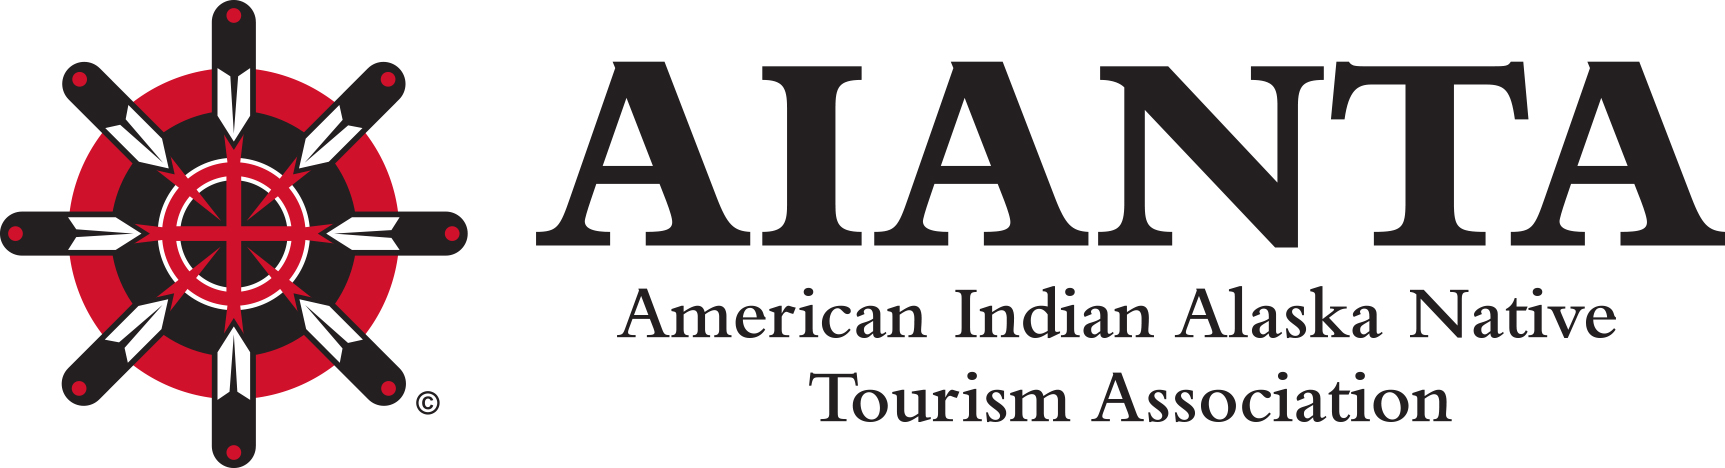 American Indian Alaska Native Tourism Association logo